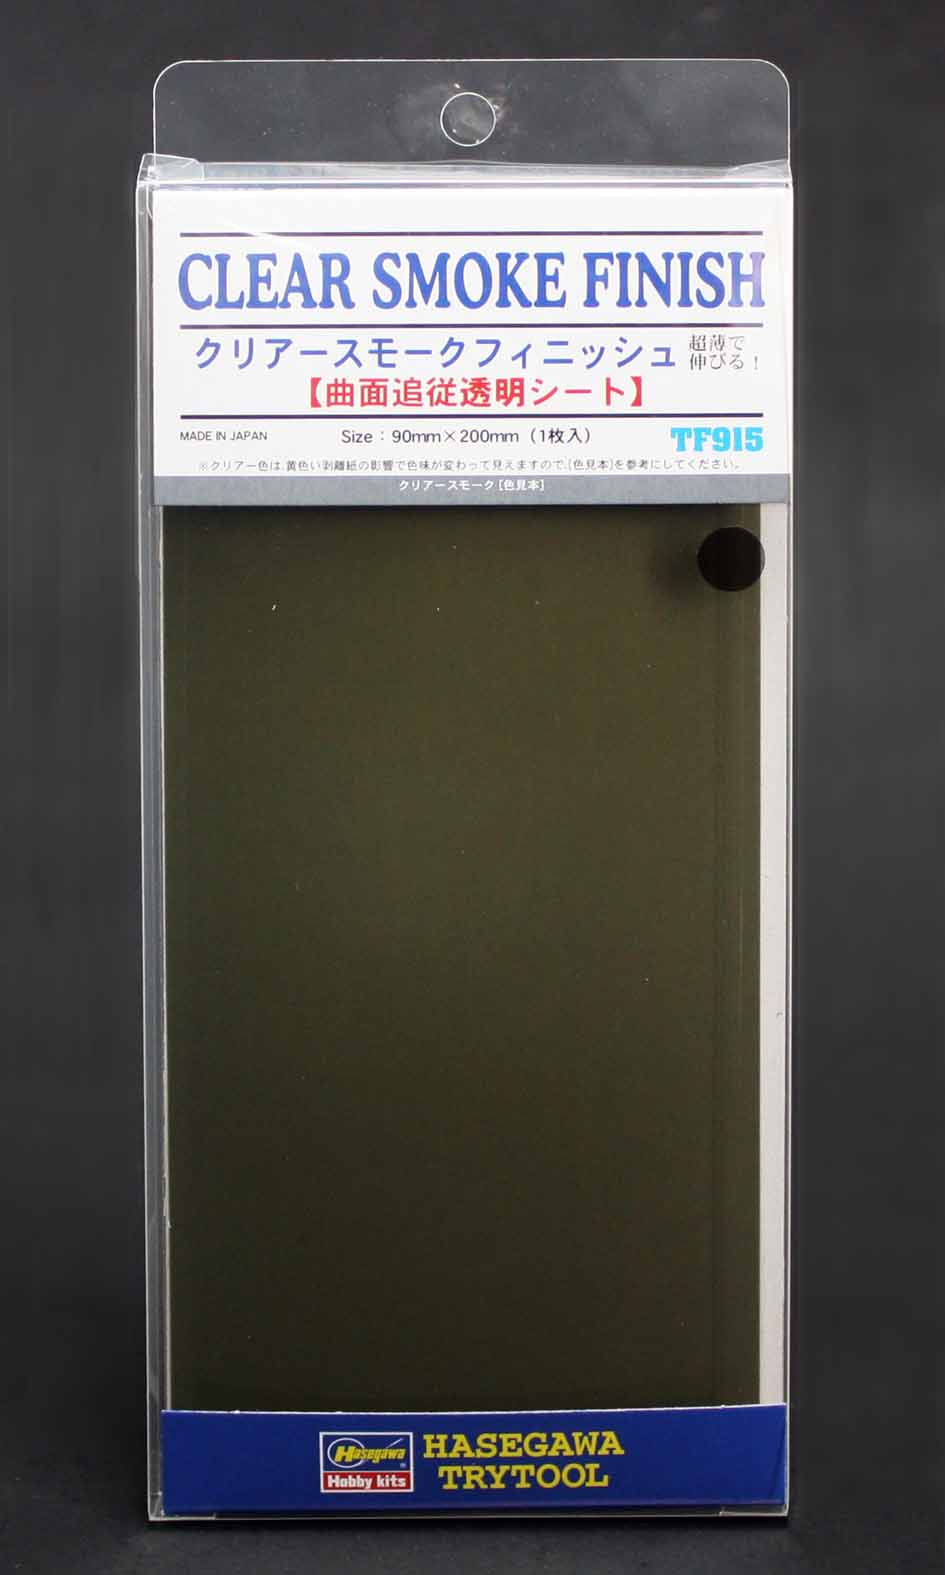 Hasegawa CLEAR SMOKE FINISH (size: 90mm x 200mm) (TF915)